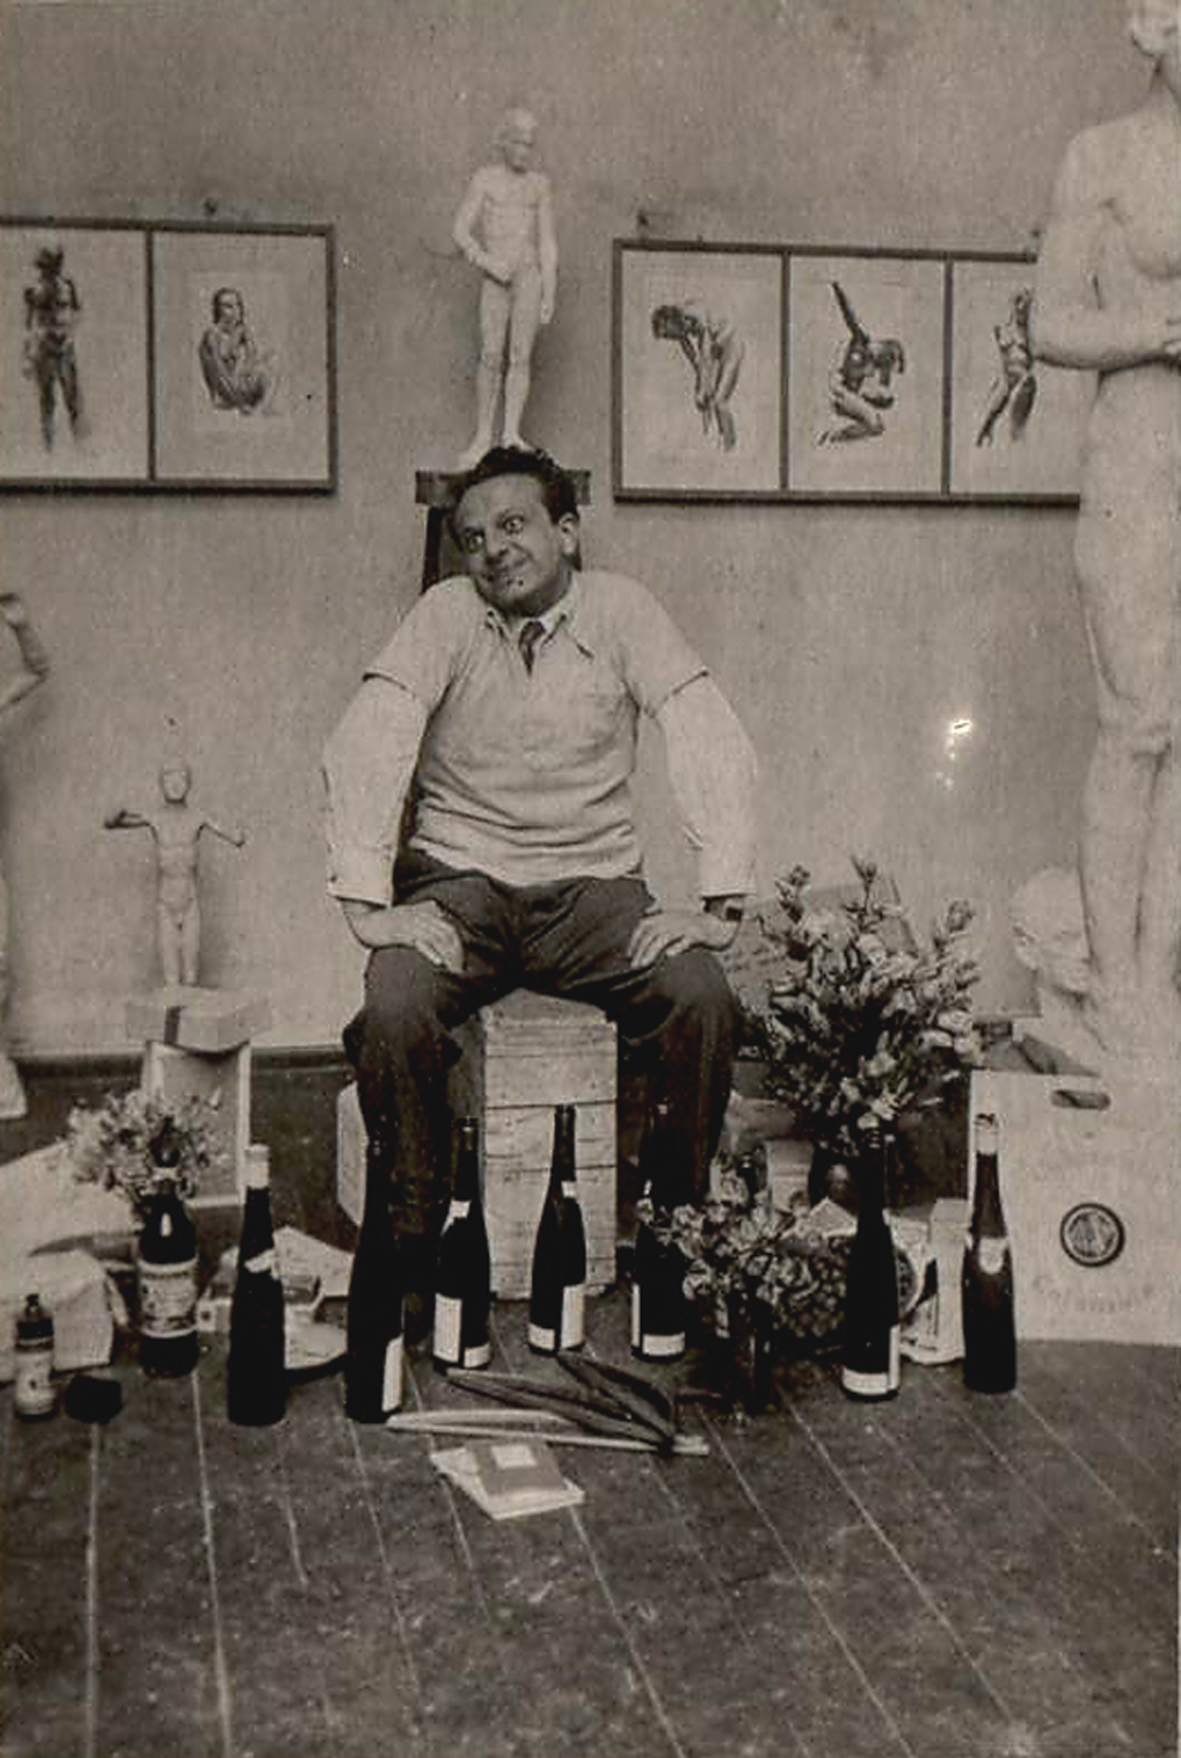 Ivo 1933 im Atelier in Berlin